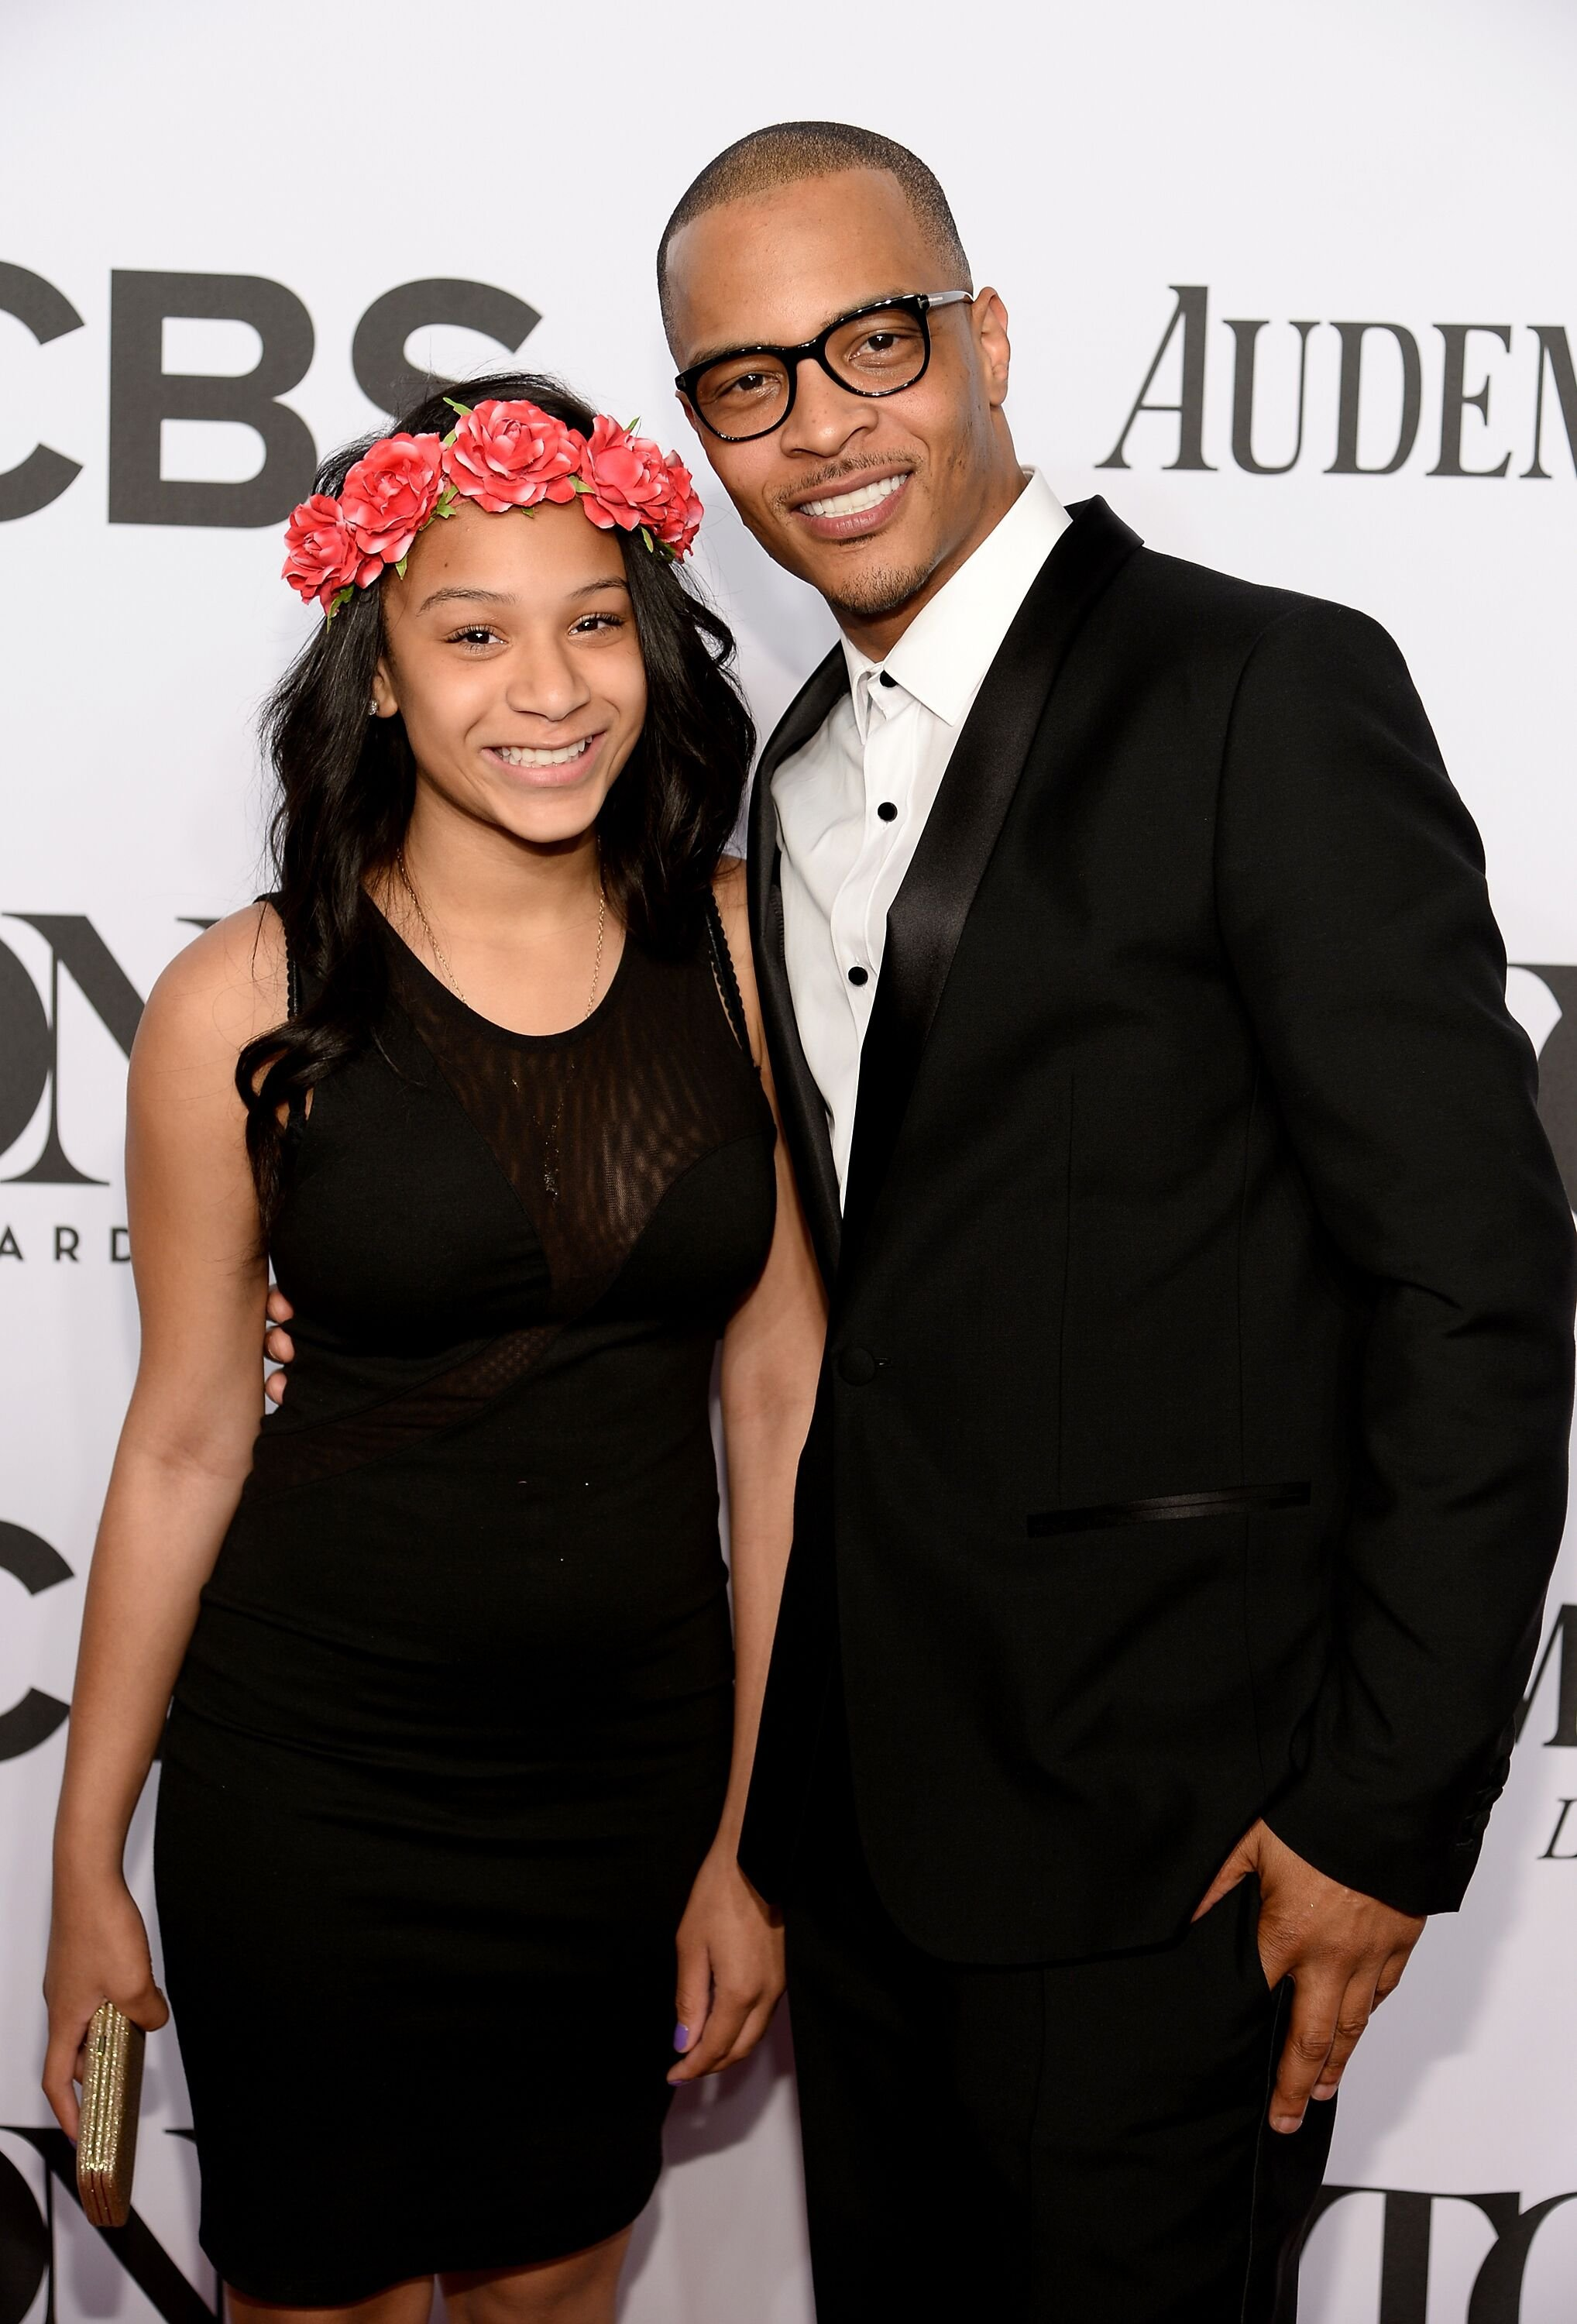 TI Harris and daughter Deyjah at T.I. at the 68th Annual Tony Awards in New York/ Source: Getty Images